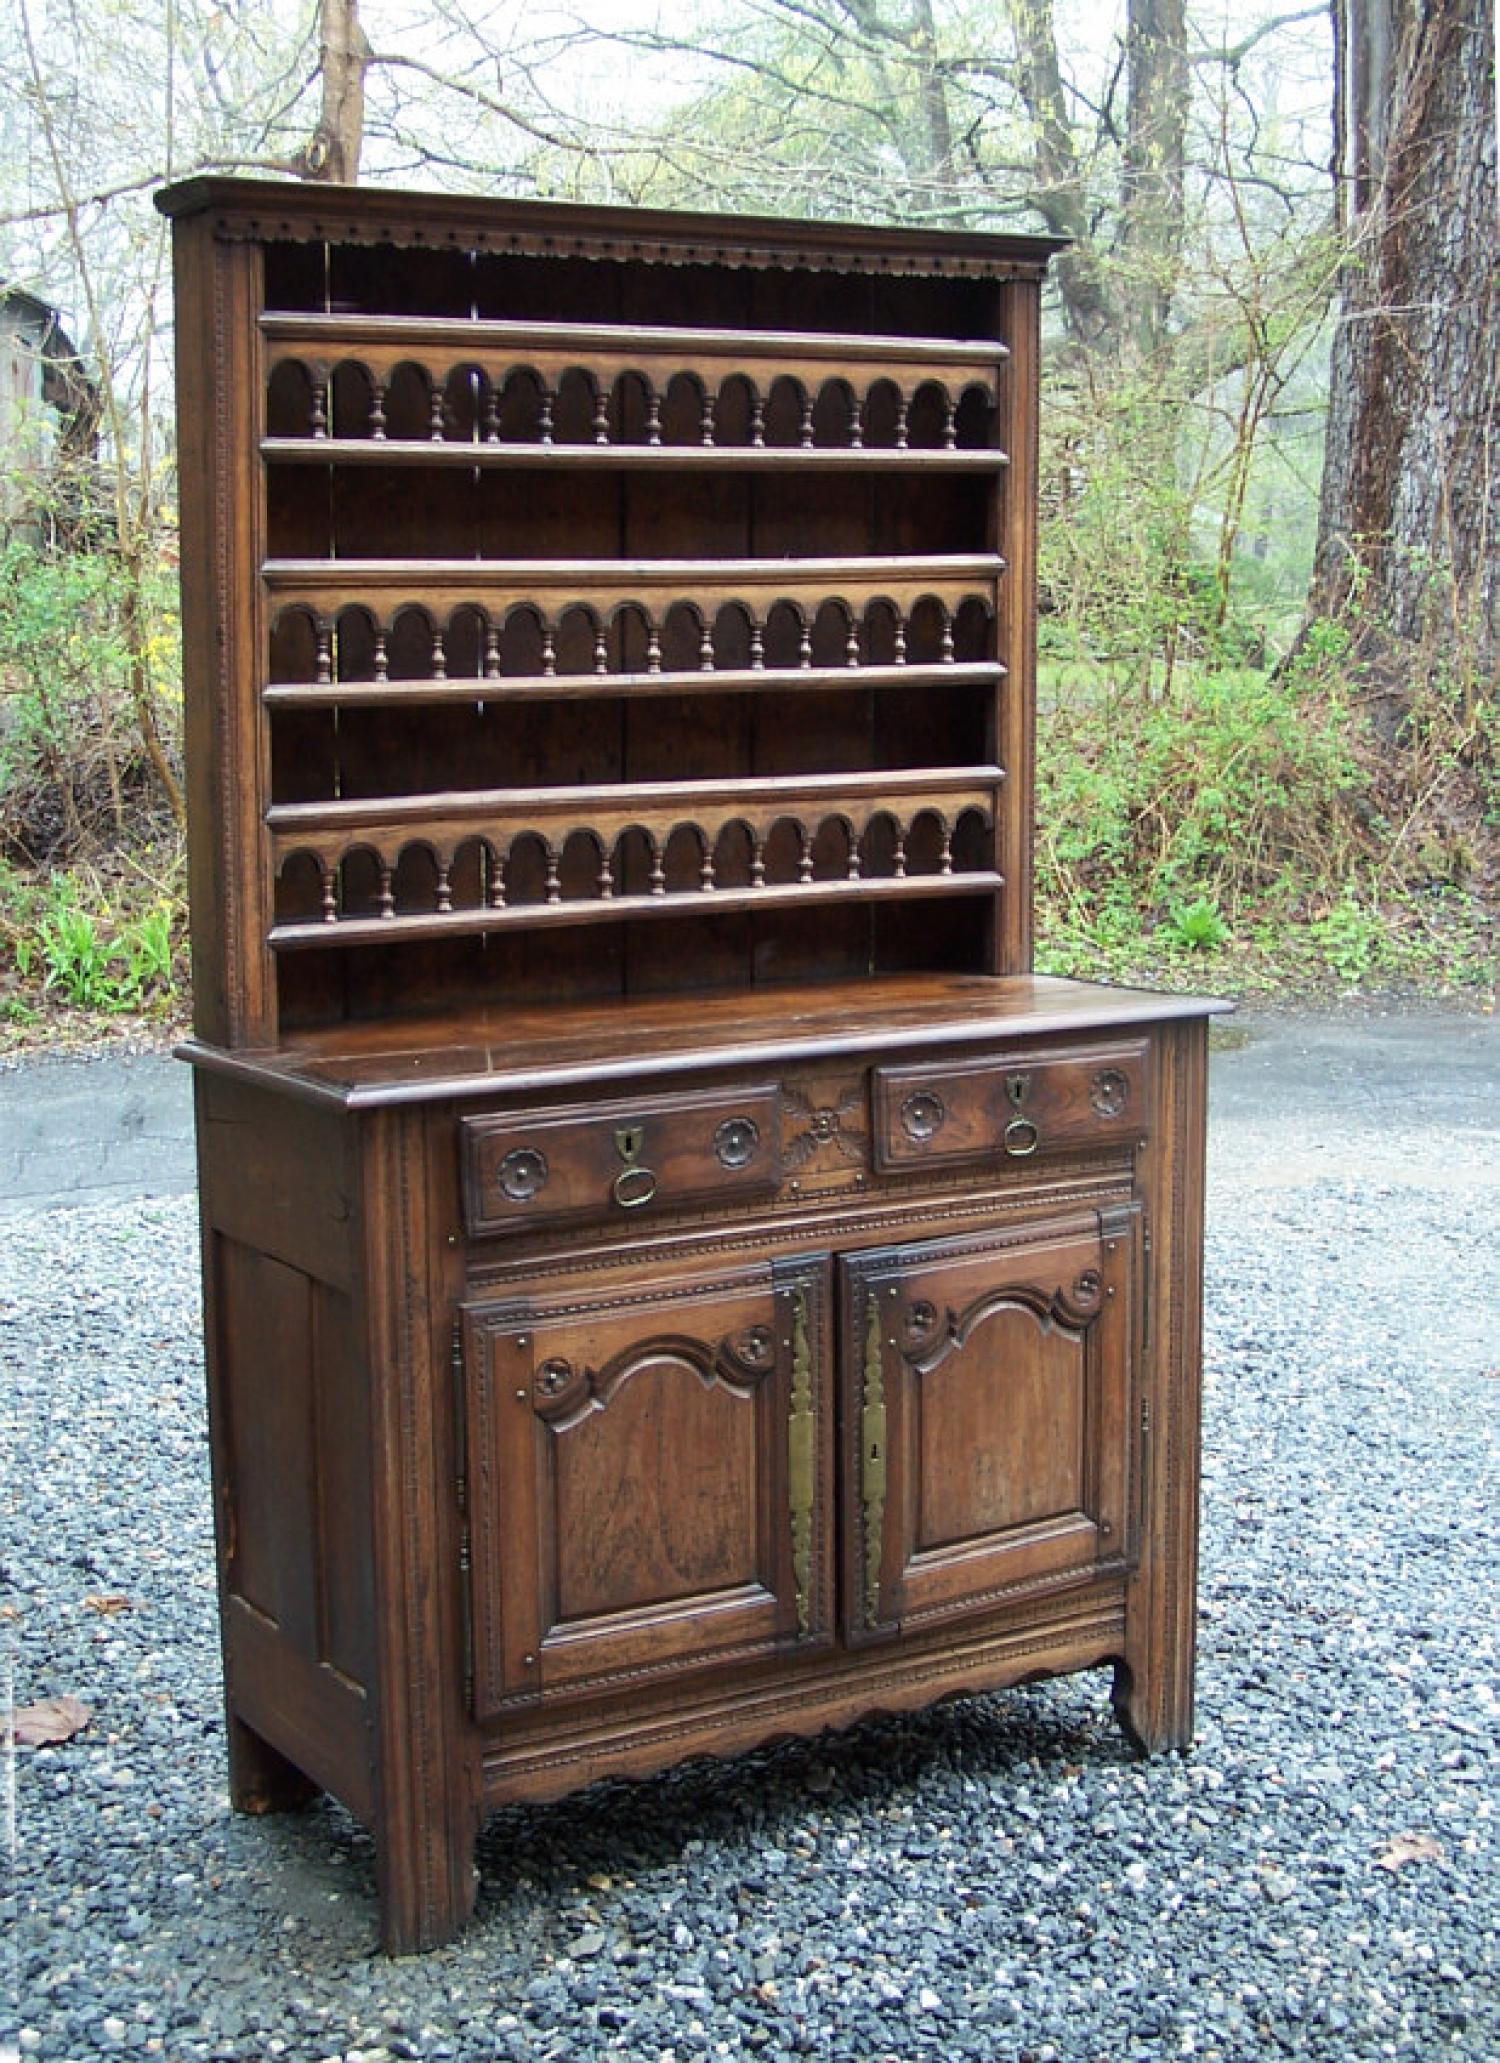 French Provincial Menager Dresser c1780